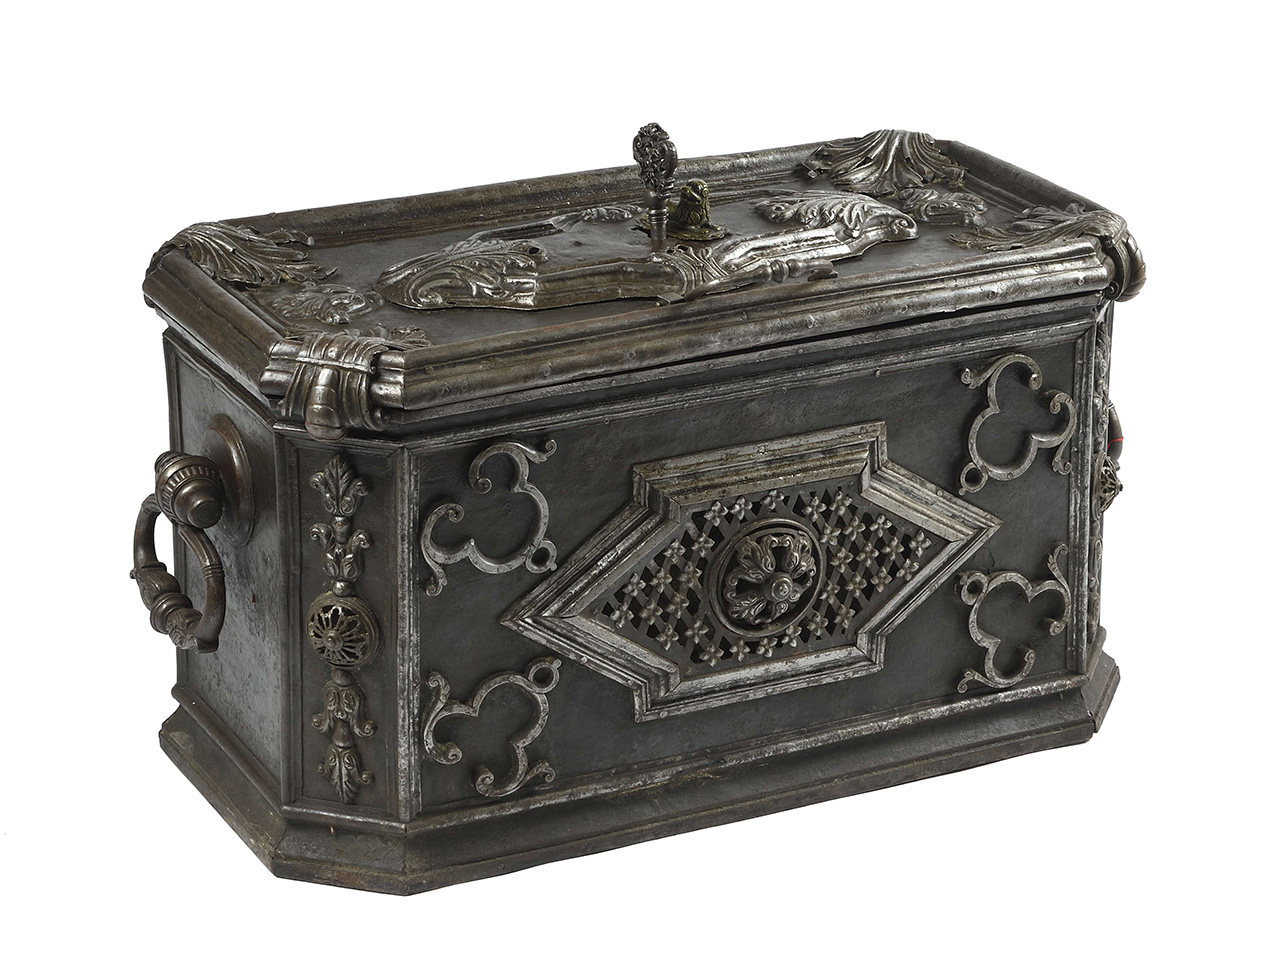 Masterpiece' strongbox, Strasbourg, c. 1730/1740, forged iron, 46 x 82 x 45 cm.Estimate: €20,000 /25,000© MAGNIN WEDRY, Paris, 2020